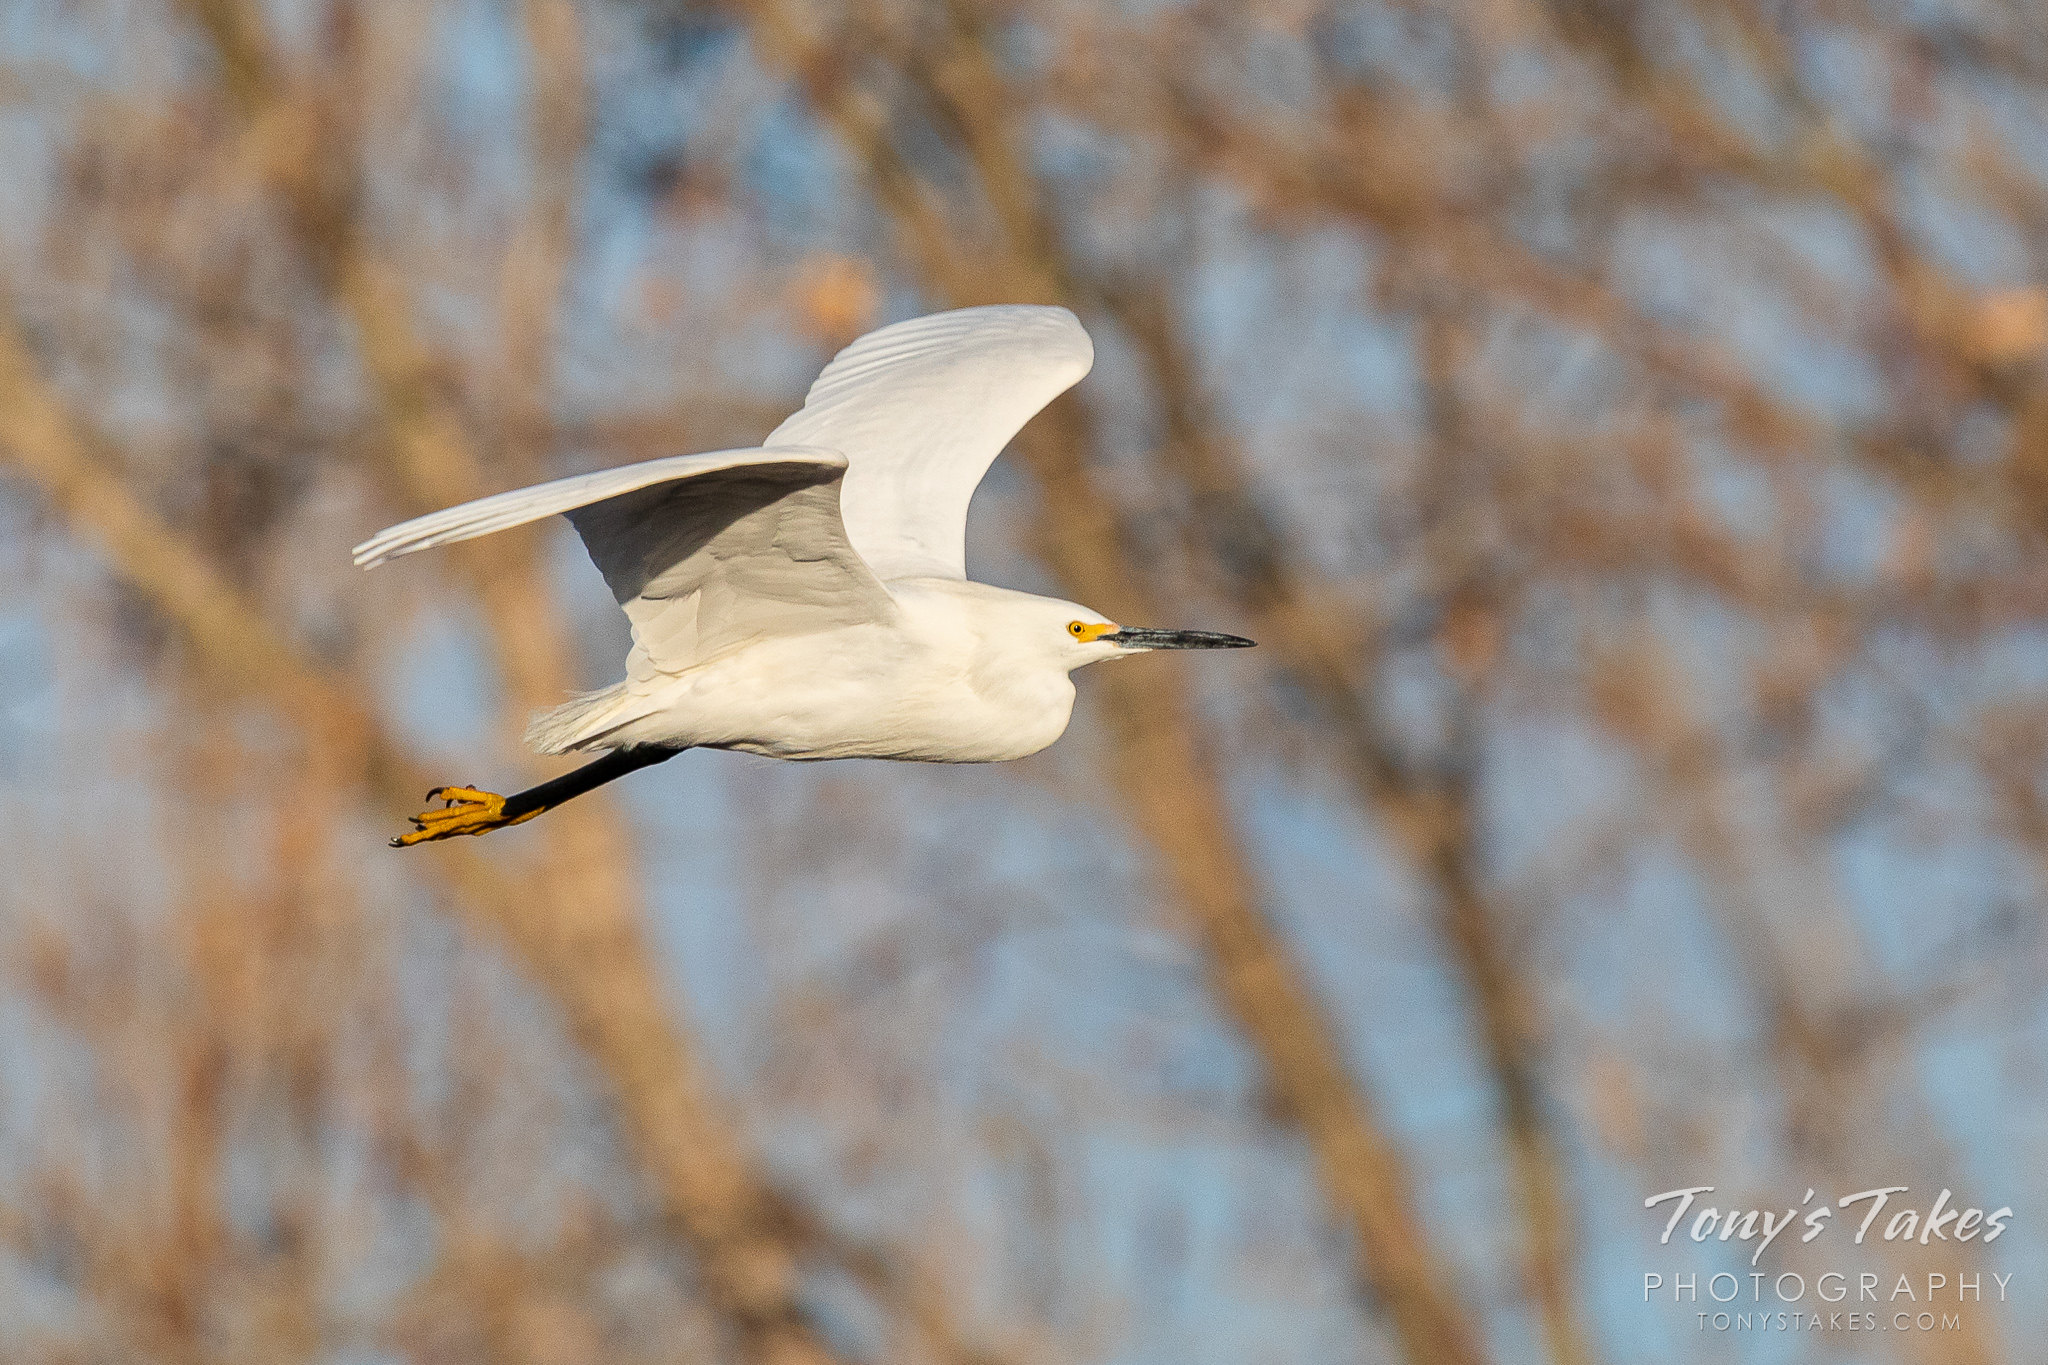 Snowy egret makes an early morning flyby